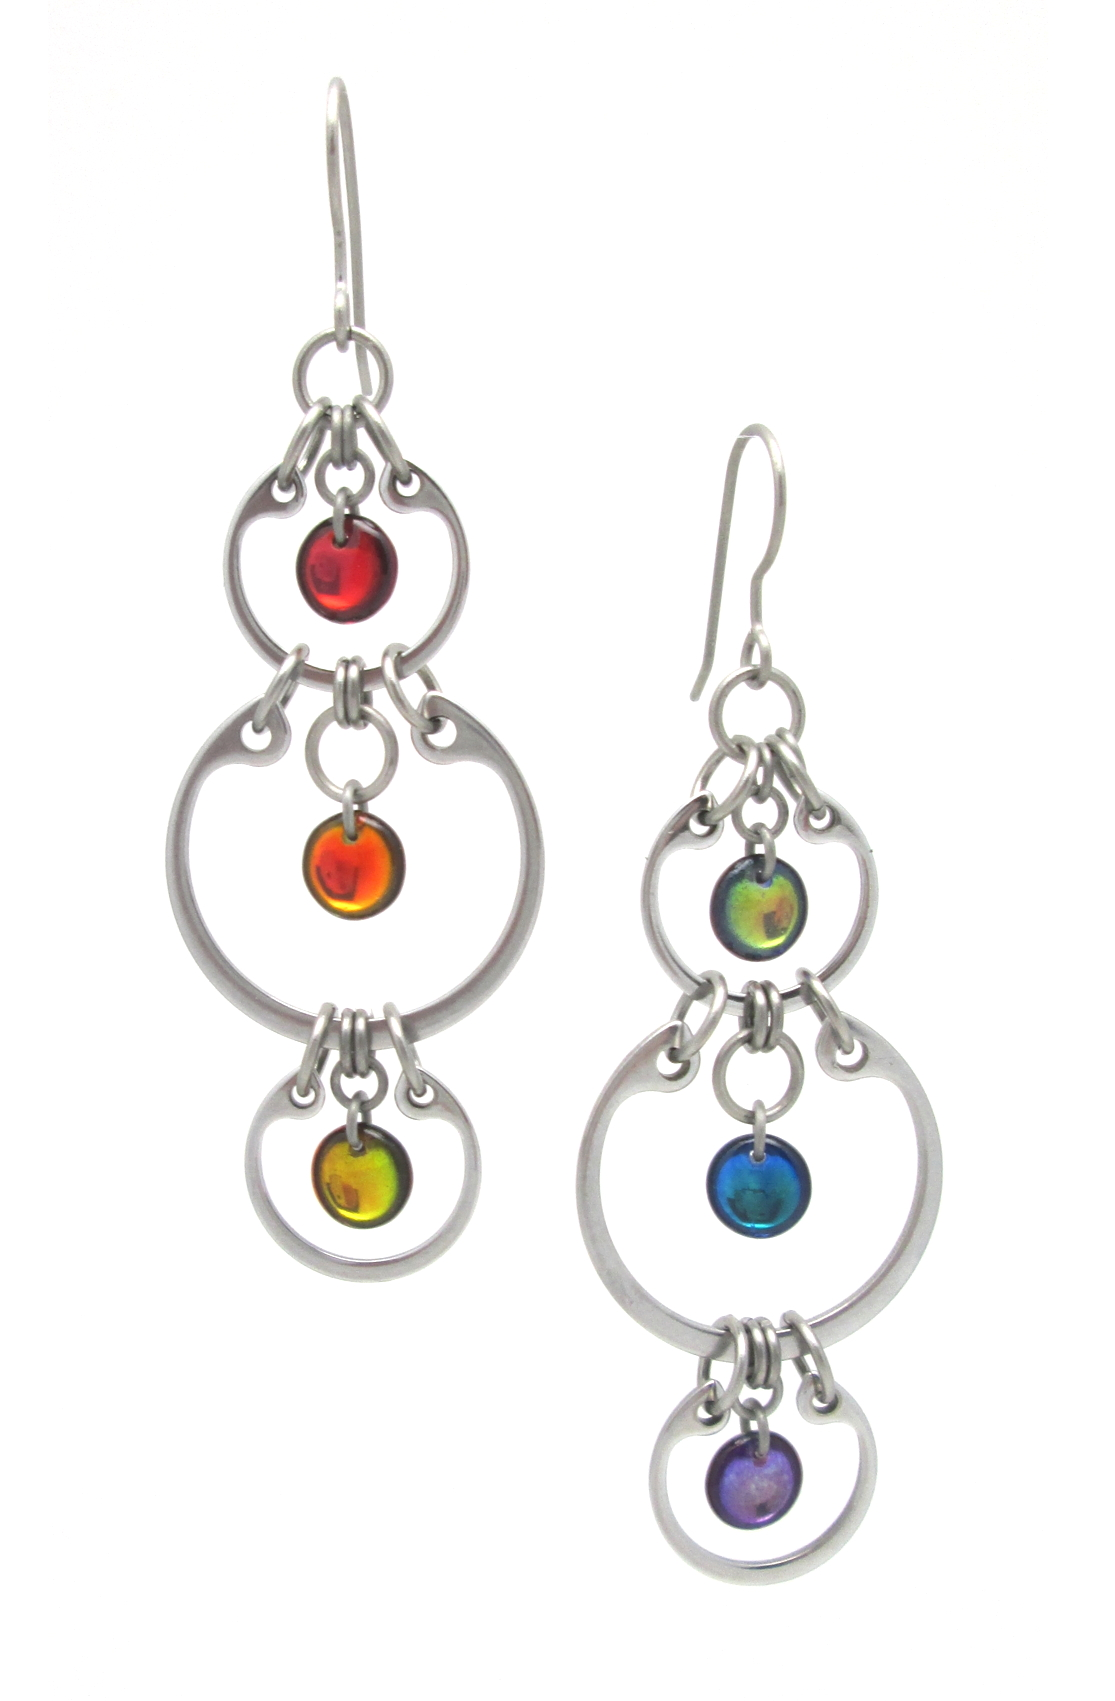 A photo of Wraptillion's sleek, modern, colorful Alternating Rainbow Earrings (linked stainless circle dangle earrings) on a white background.